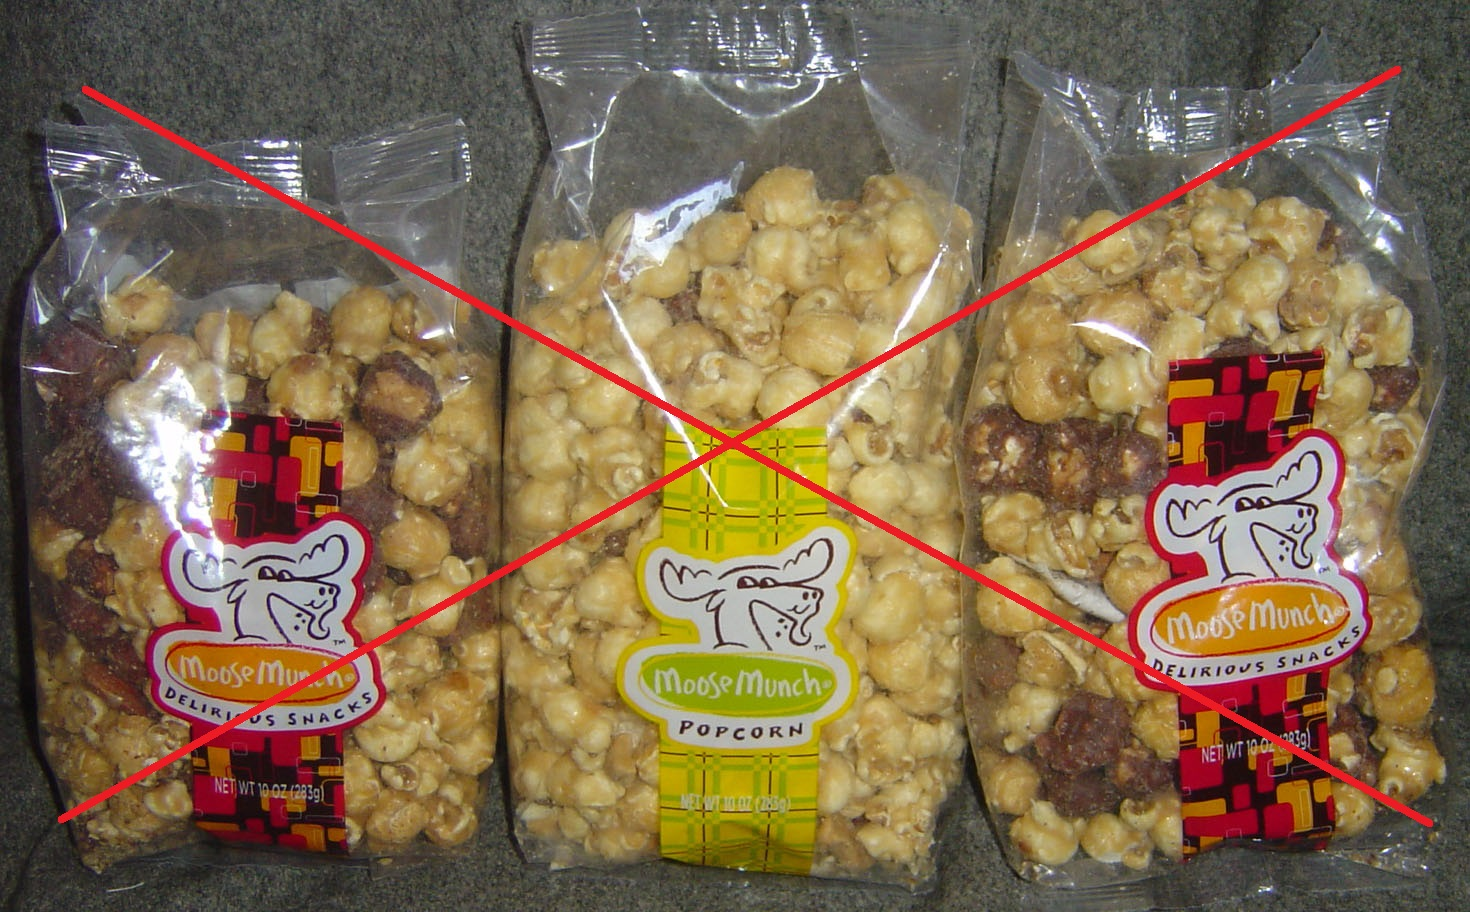 Harry and David's Moose Munch